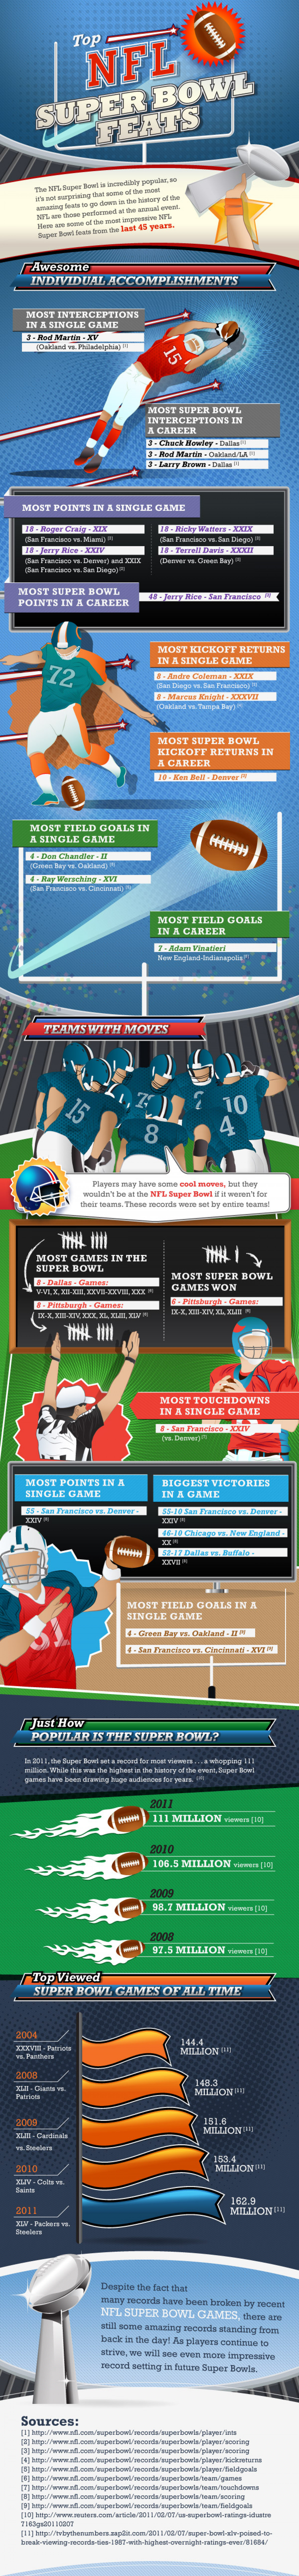 Most Amazing NFL Super Bowl Feats Infographic